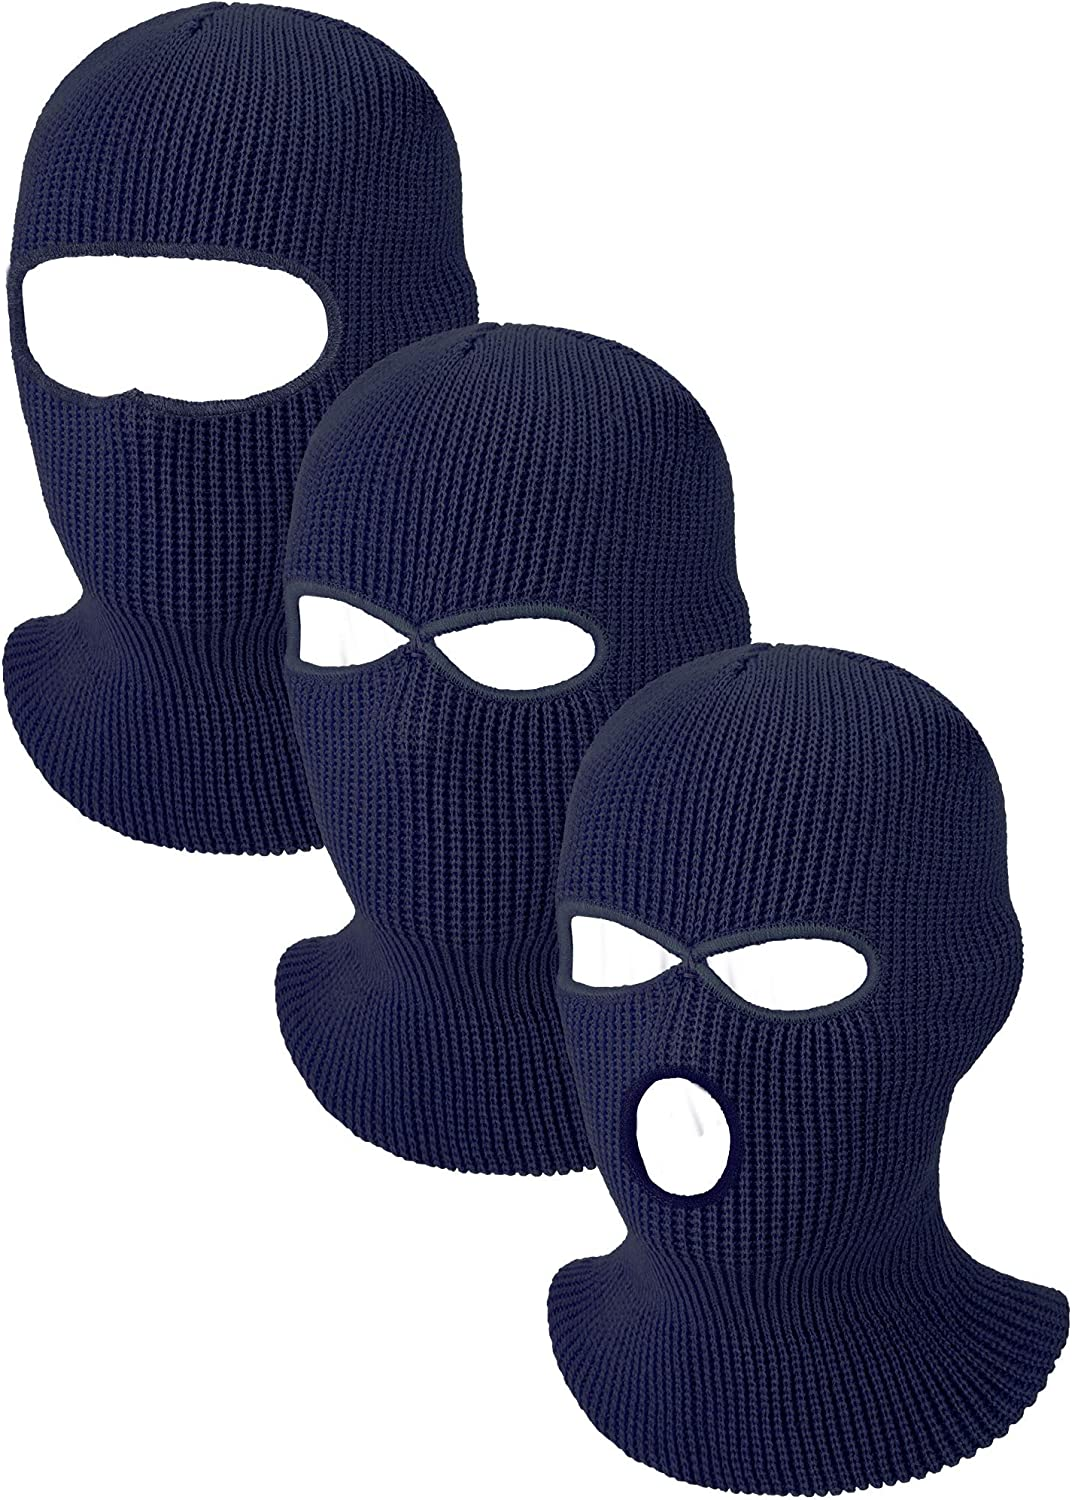 3 Pieces Knit Full Face Cover Winter Balaclava Face Covering Thermal Ski Cover for Adult